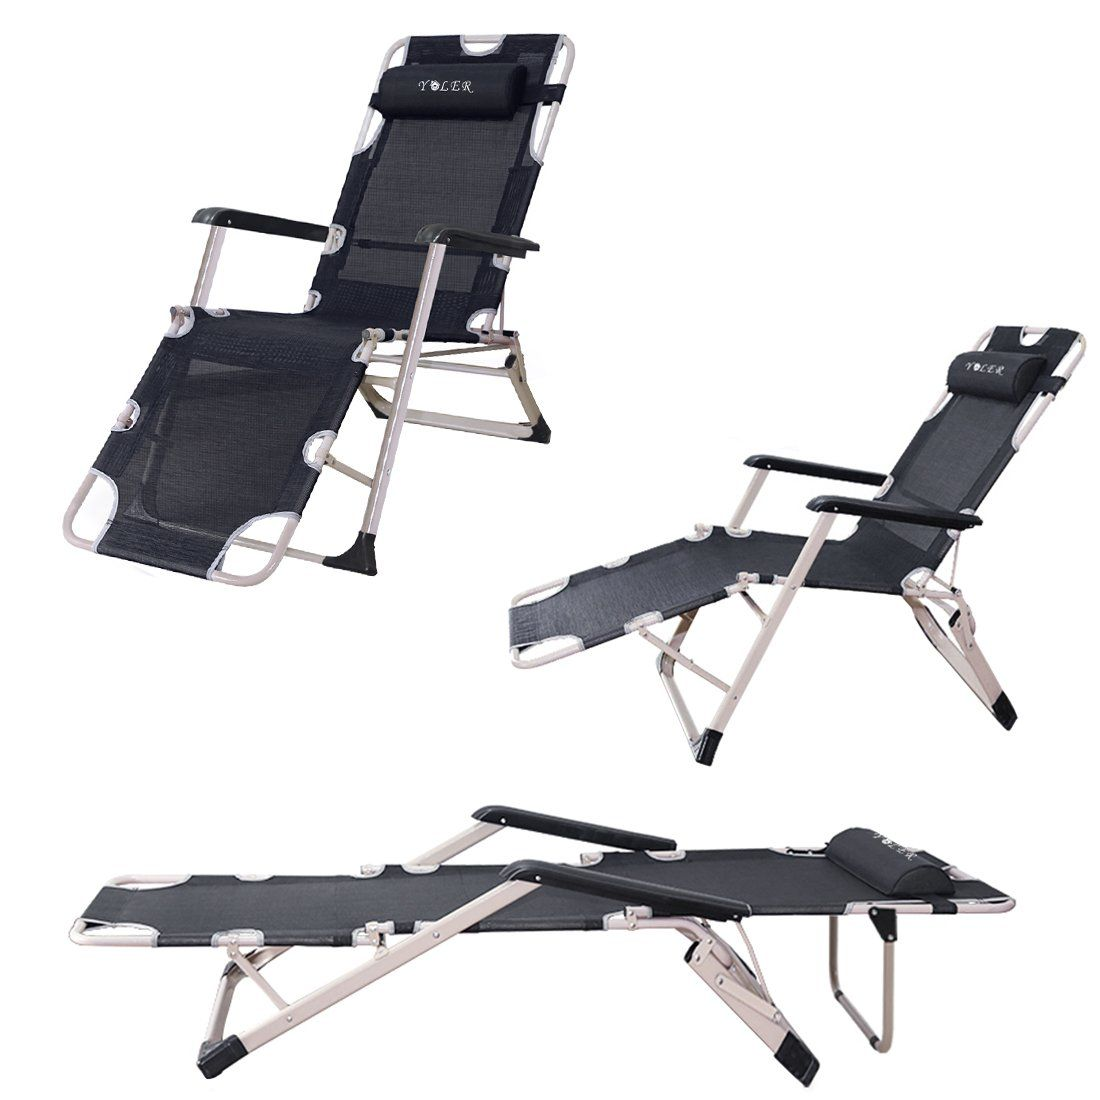 Beach lounge chair portable - Natuzy Breathable Textilene Patio Lounge Chair Portable Sturdy Folding Bed Summer Cool Beach Folding